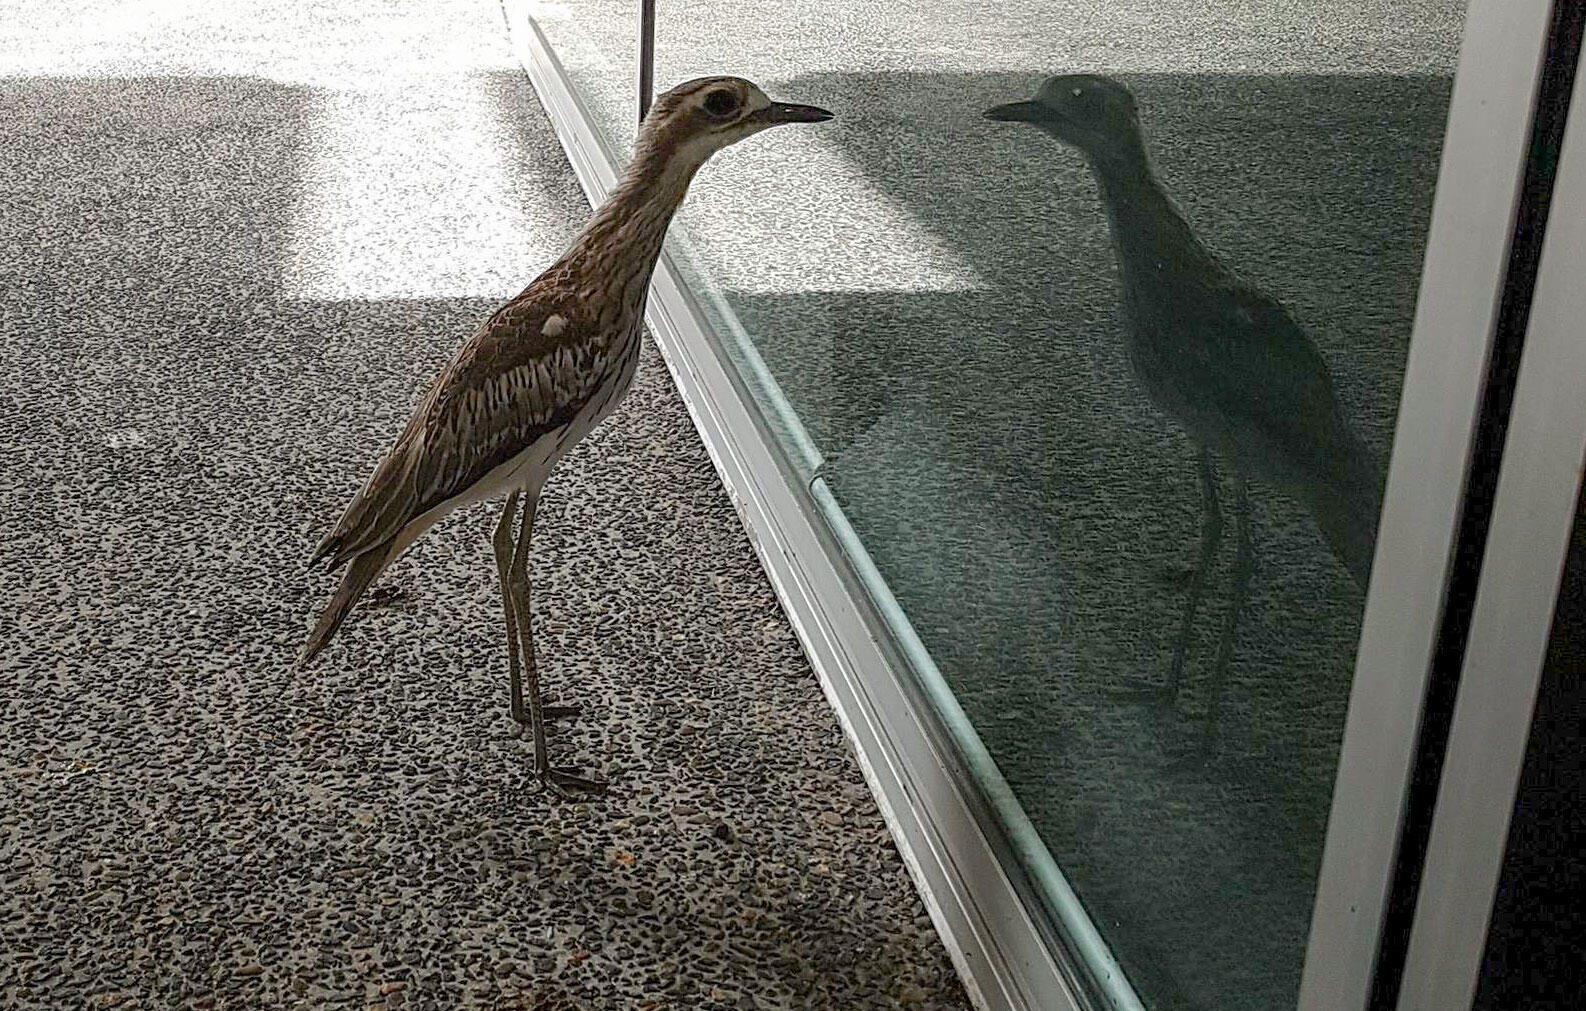 The Bush Stone-curlew at Queensland University of Technology in Australia. Heart eyes all around. Nick Wiggins/ABC